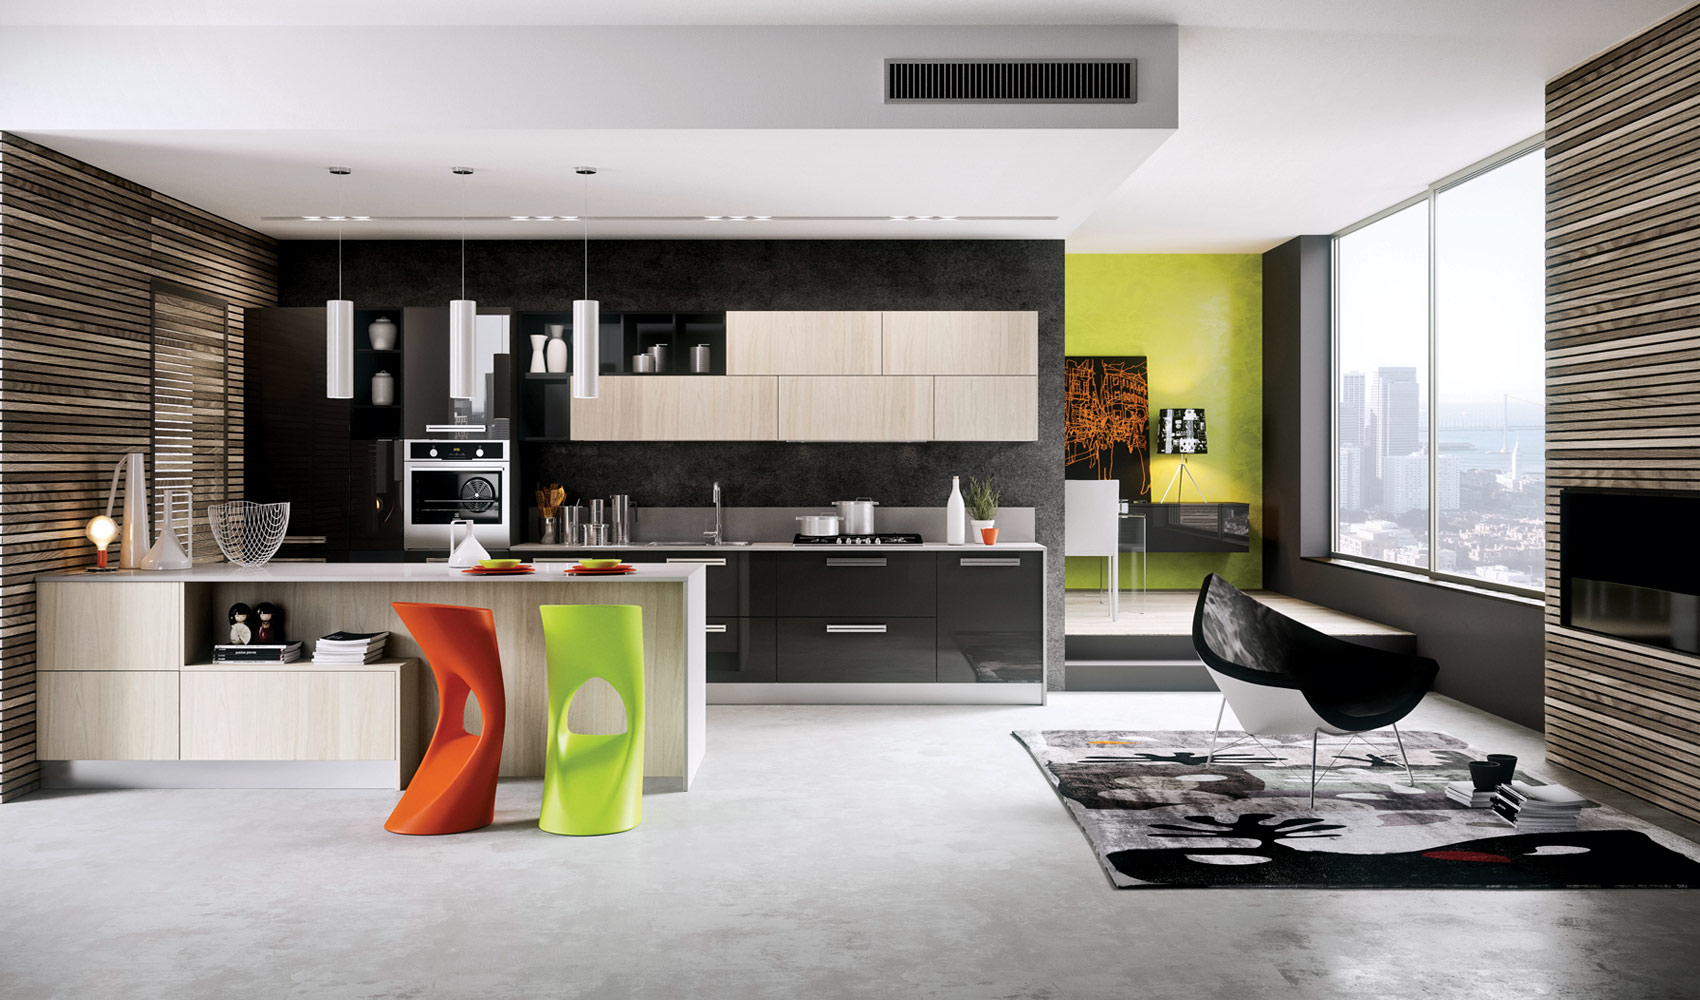 Dise o de cocinas modernas al estilo arte pop construye for New kitchen designs 2015